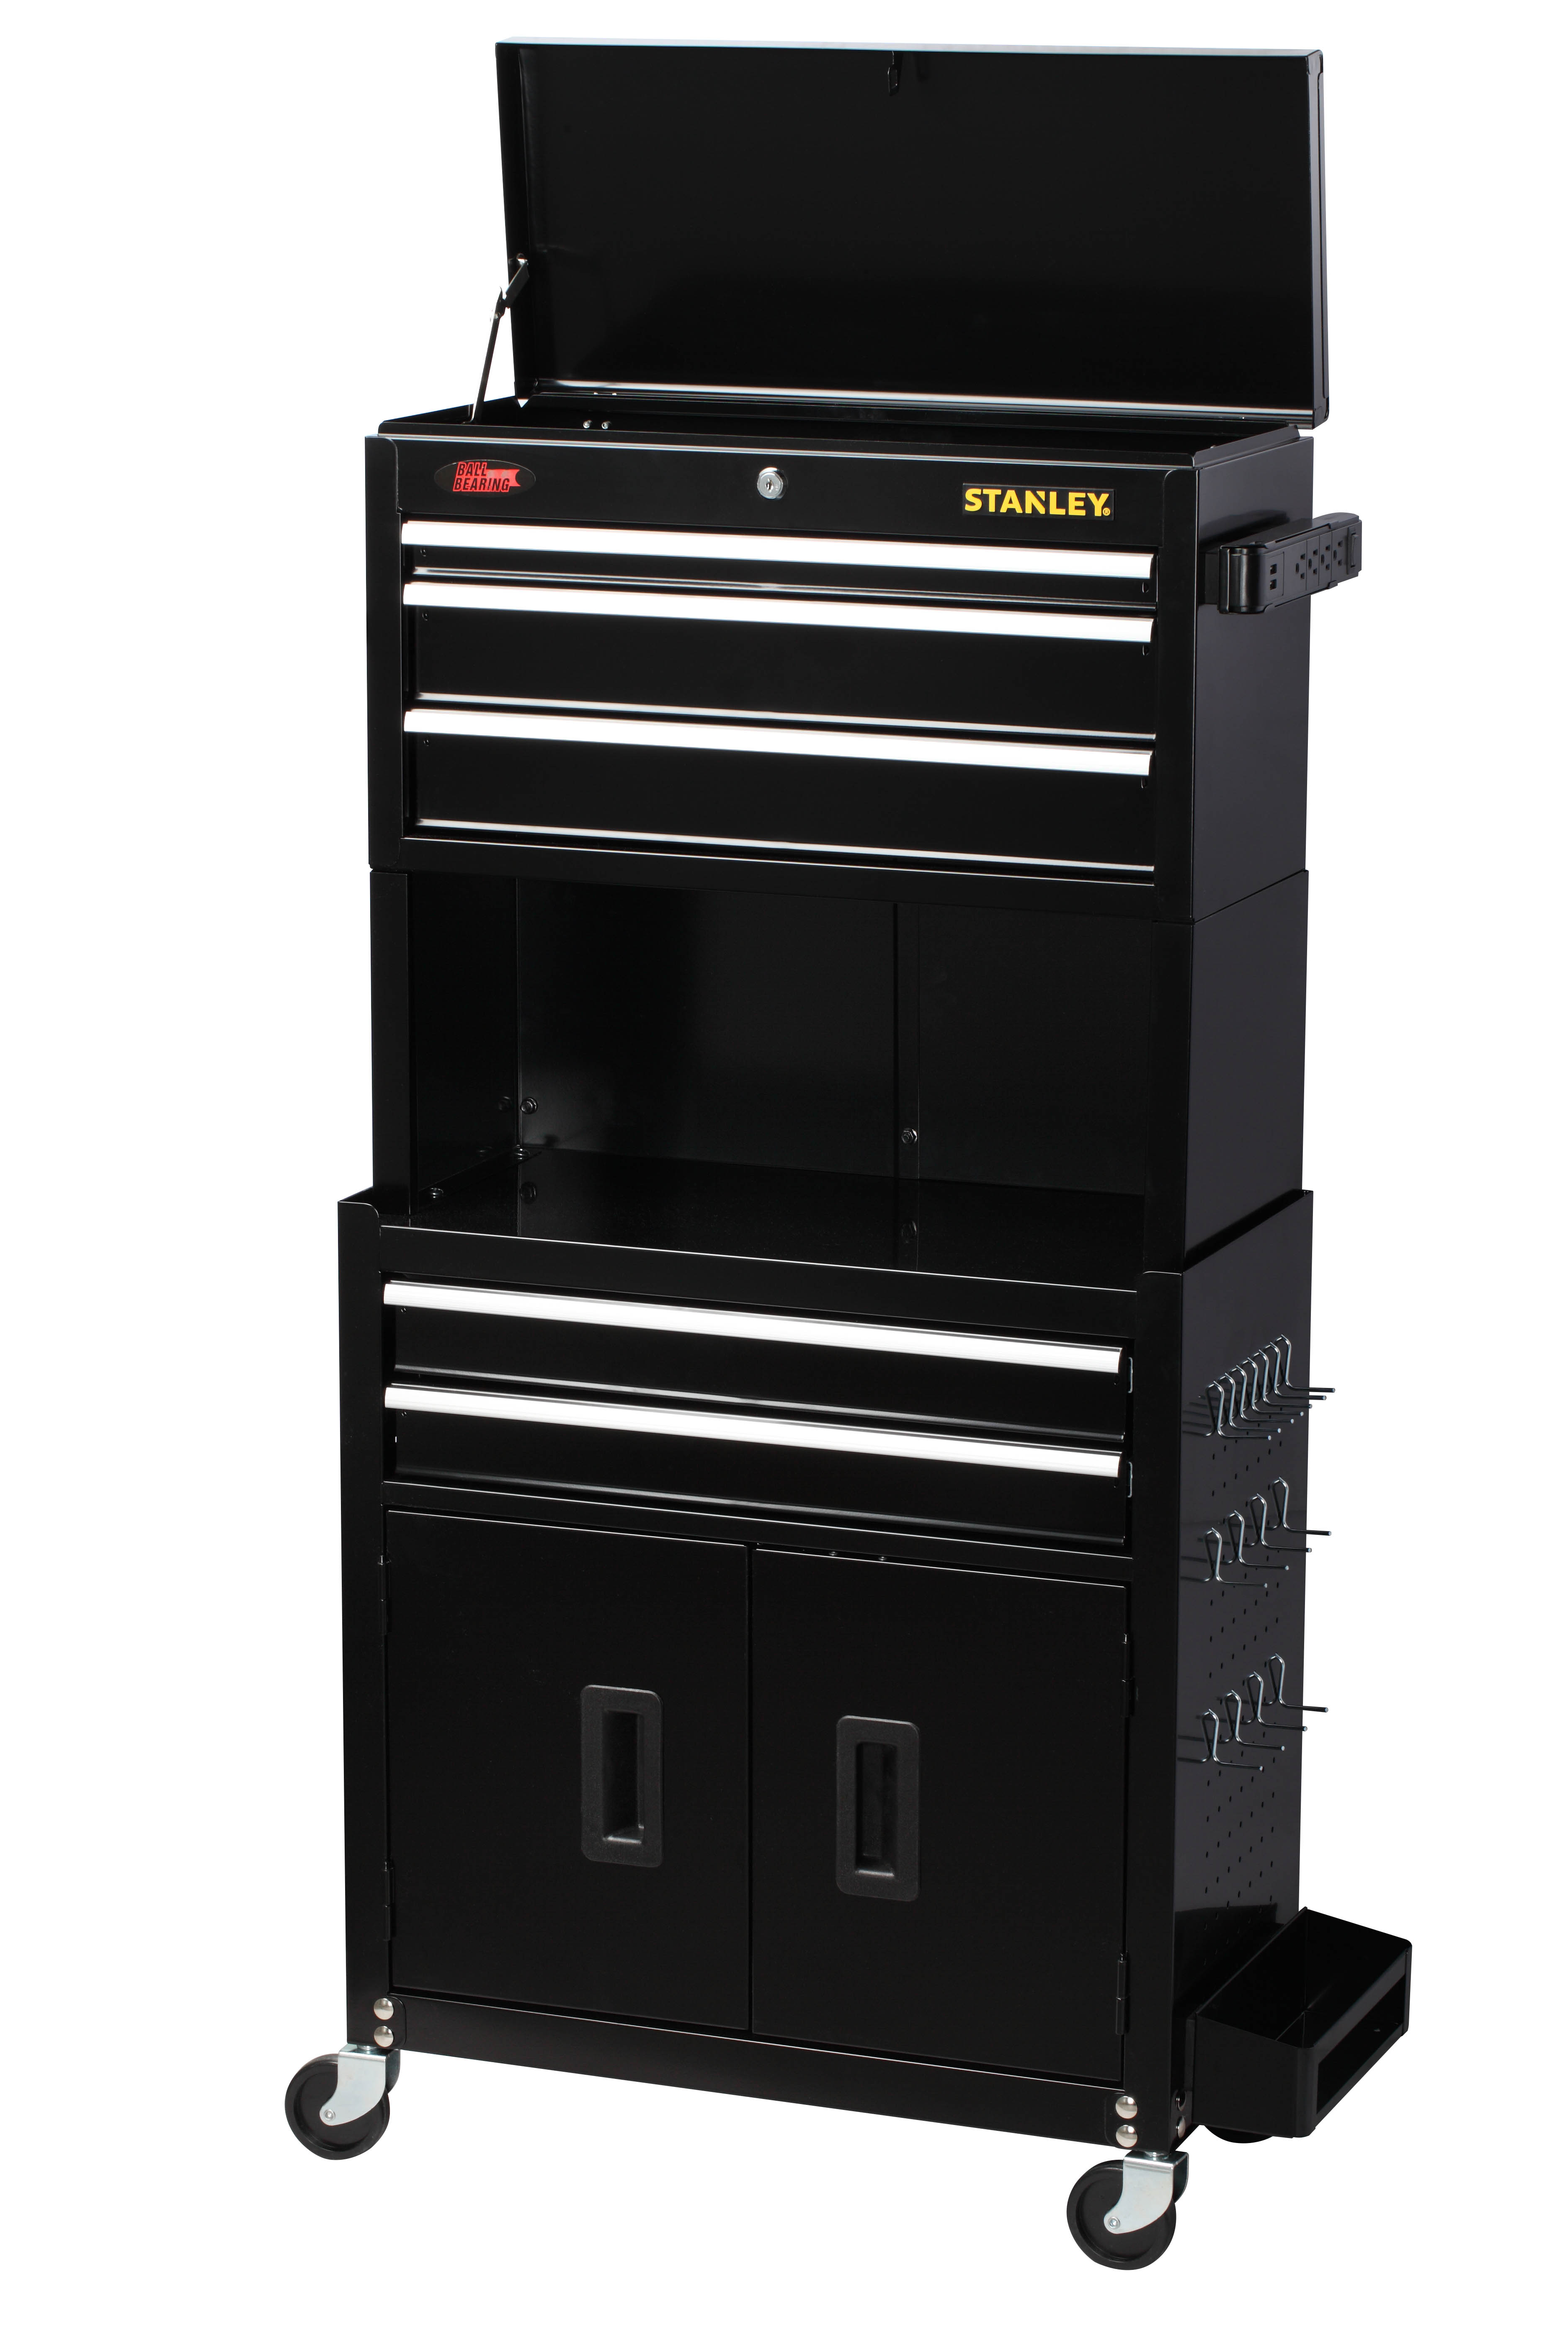 STANLEY 24-Inch 5-Drawer Tool Chest and Cabinet - Walmart.com